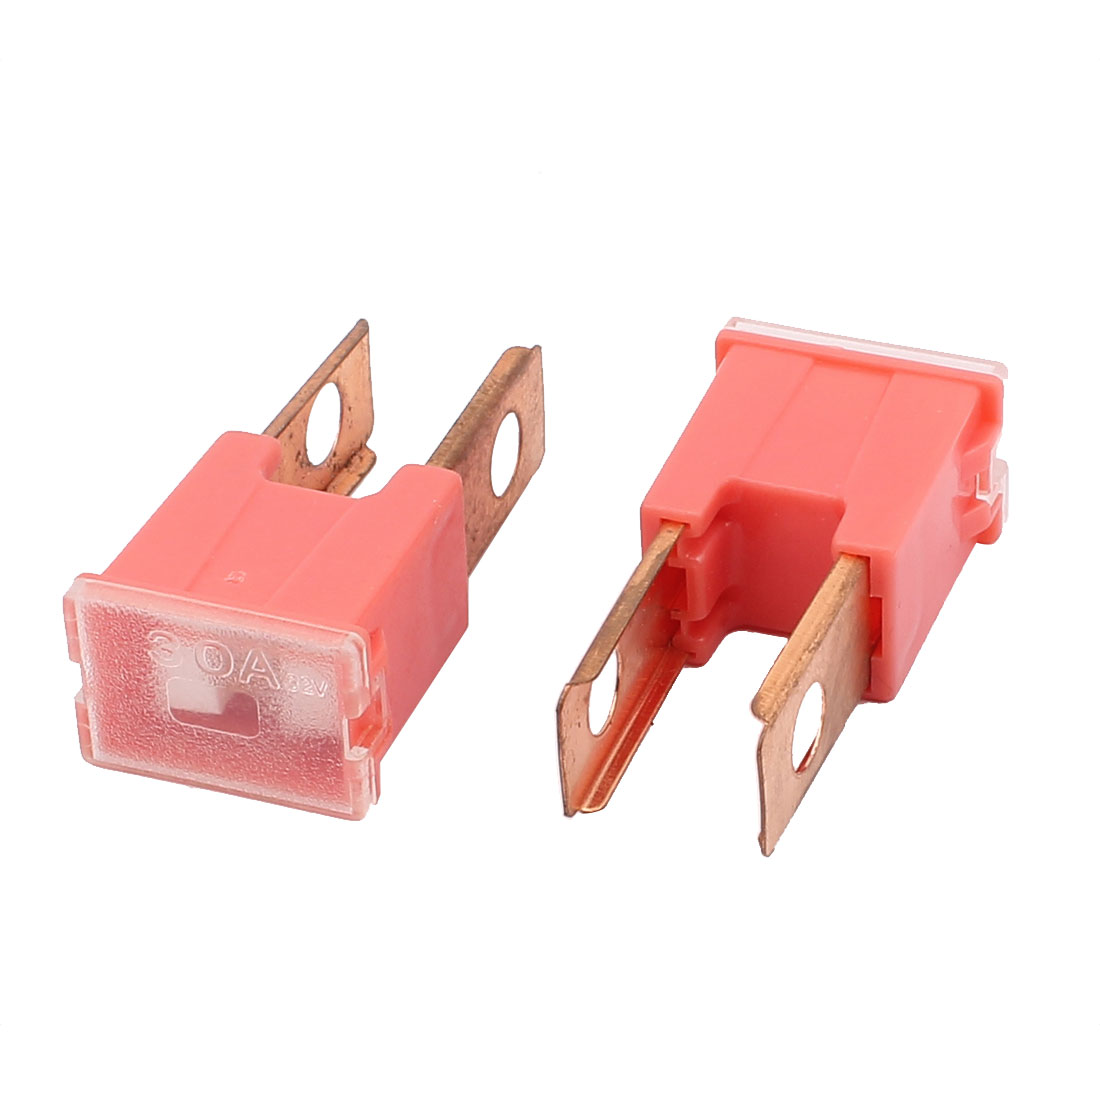 Auto Car 30A 32V Male PAL 2 Straight  Slow Blow Fuse Red 2 Pcs